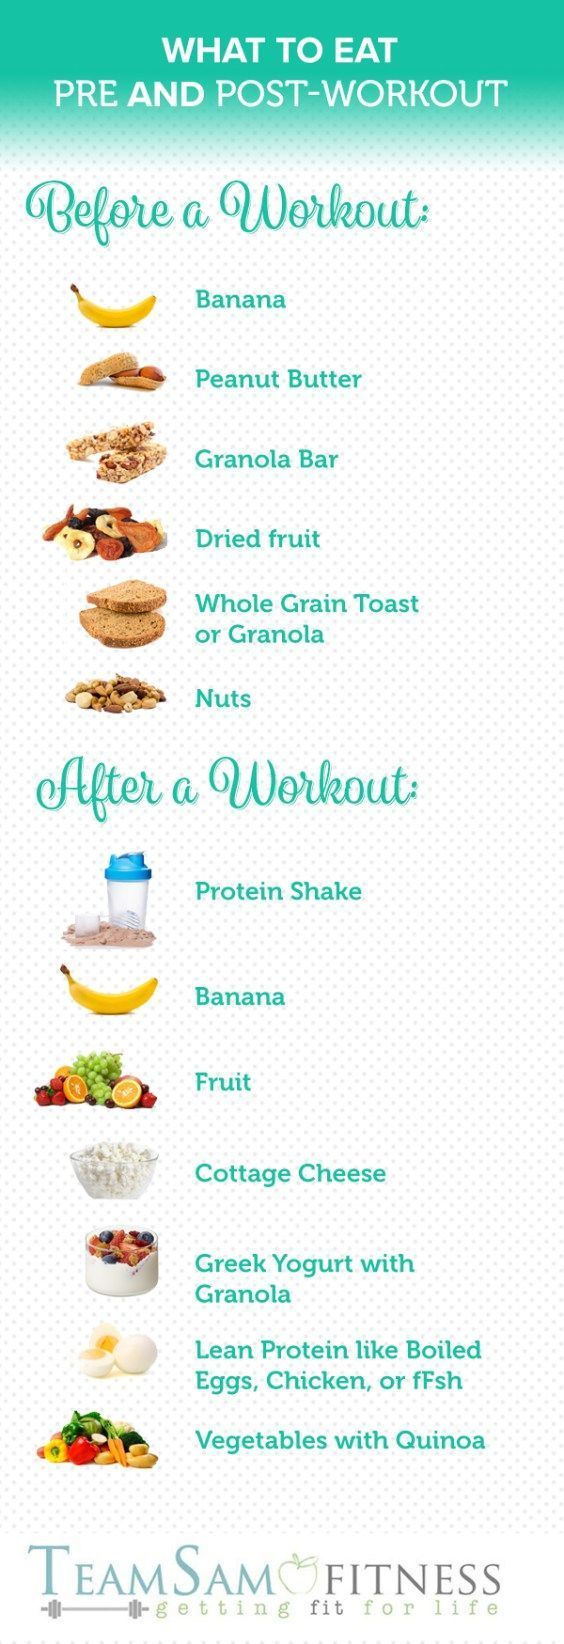 What To Eat Before And After A Workout By Teamsam Fitness Workout Food Post Workout Food Food